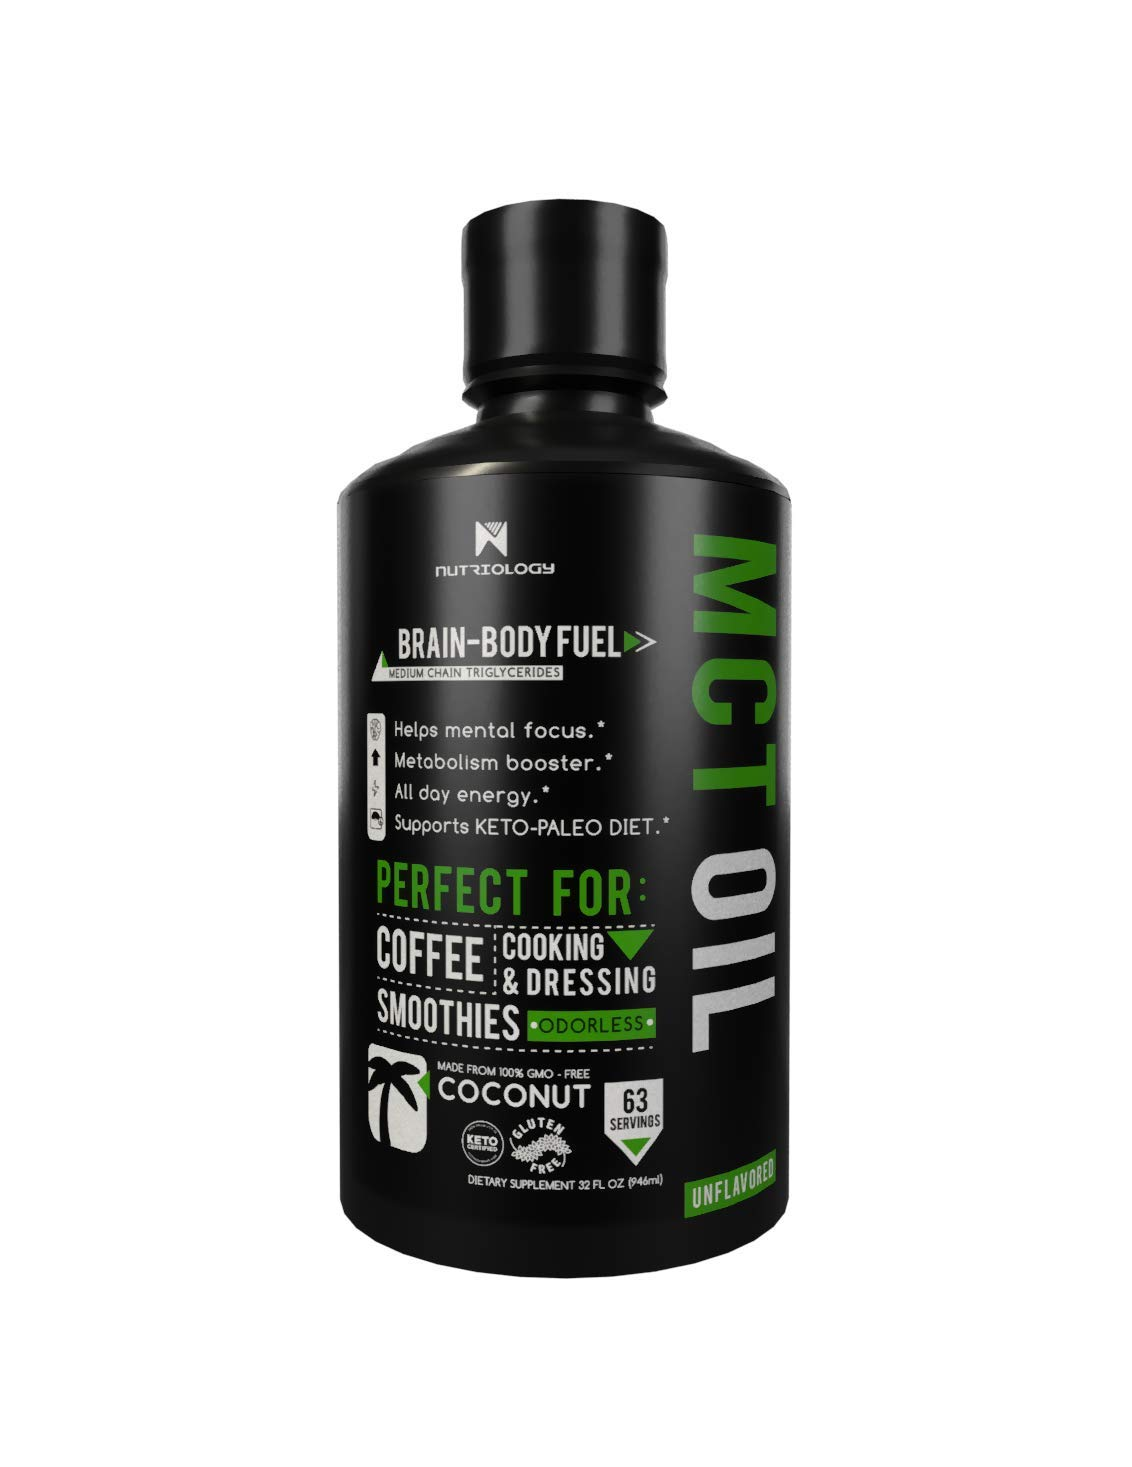 MCT Oil Keto derived from Coconut Oil - Best Keto Product for Focus and Brain Fuel - Keto Certified - 32oz